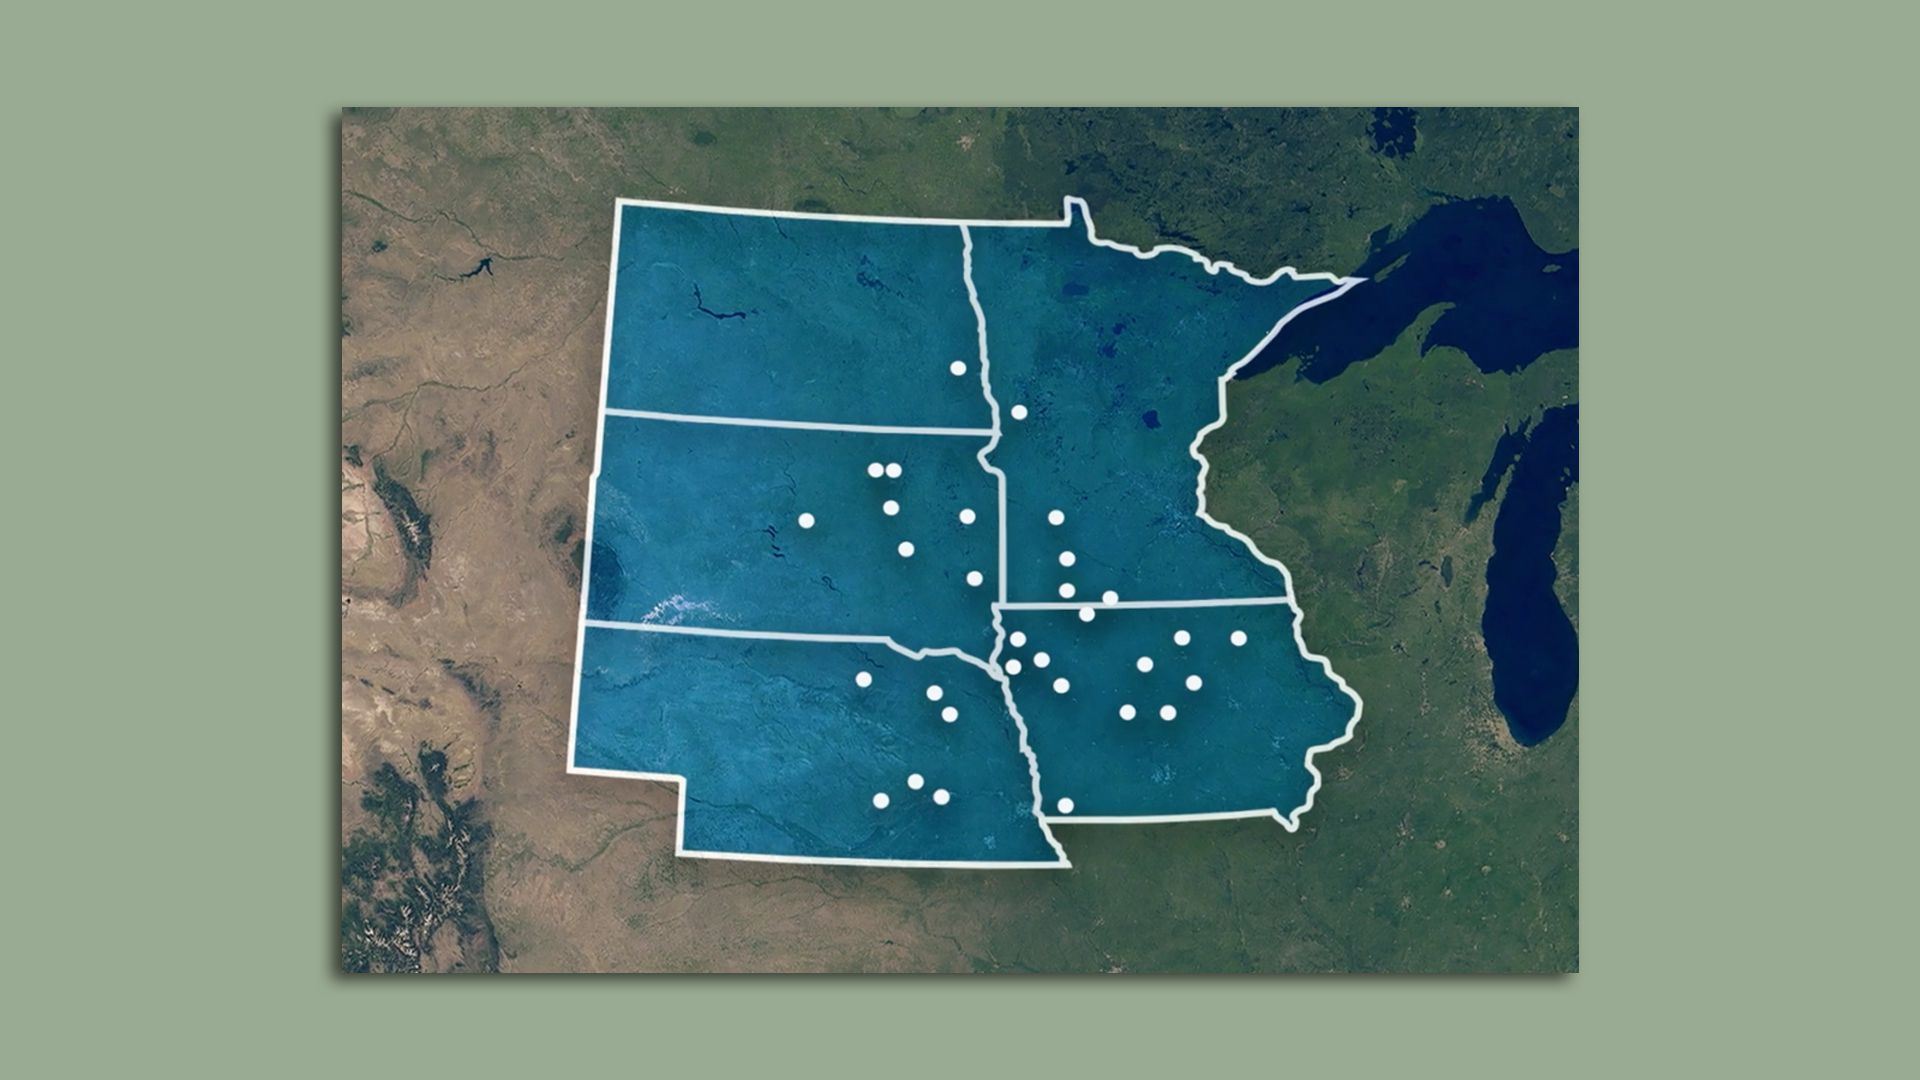 A map showing the locations of more than 30 ethanol plants where carbon dioxide would be captured.